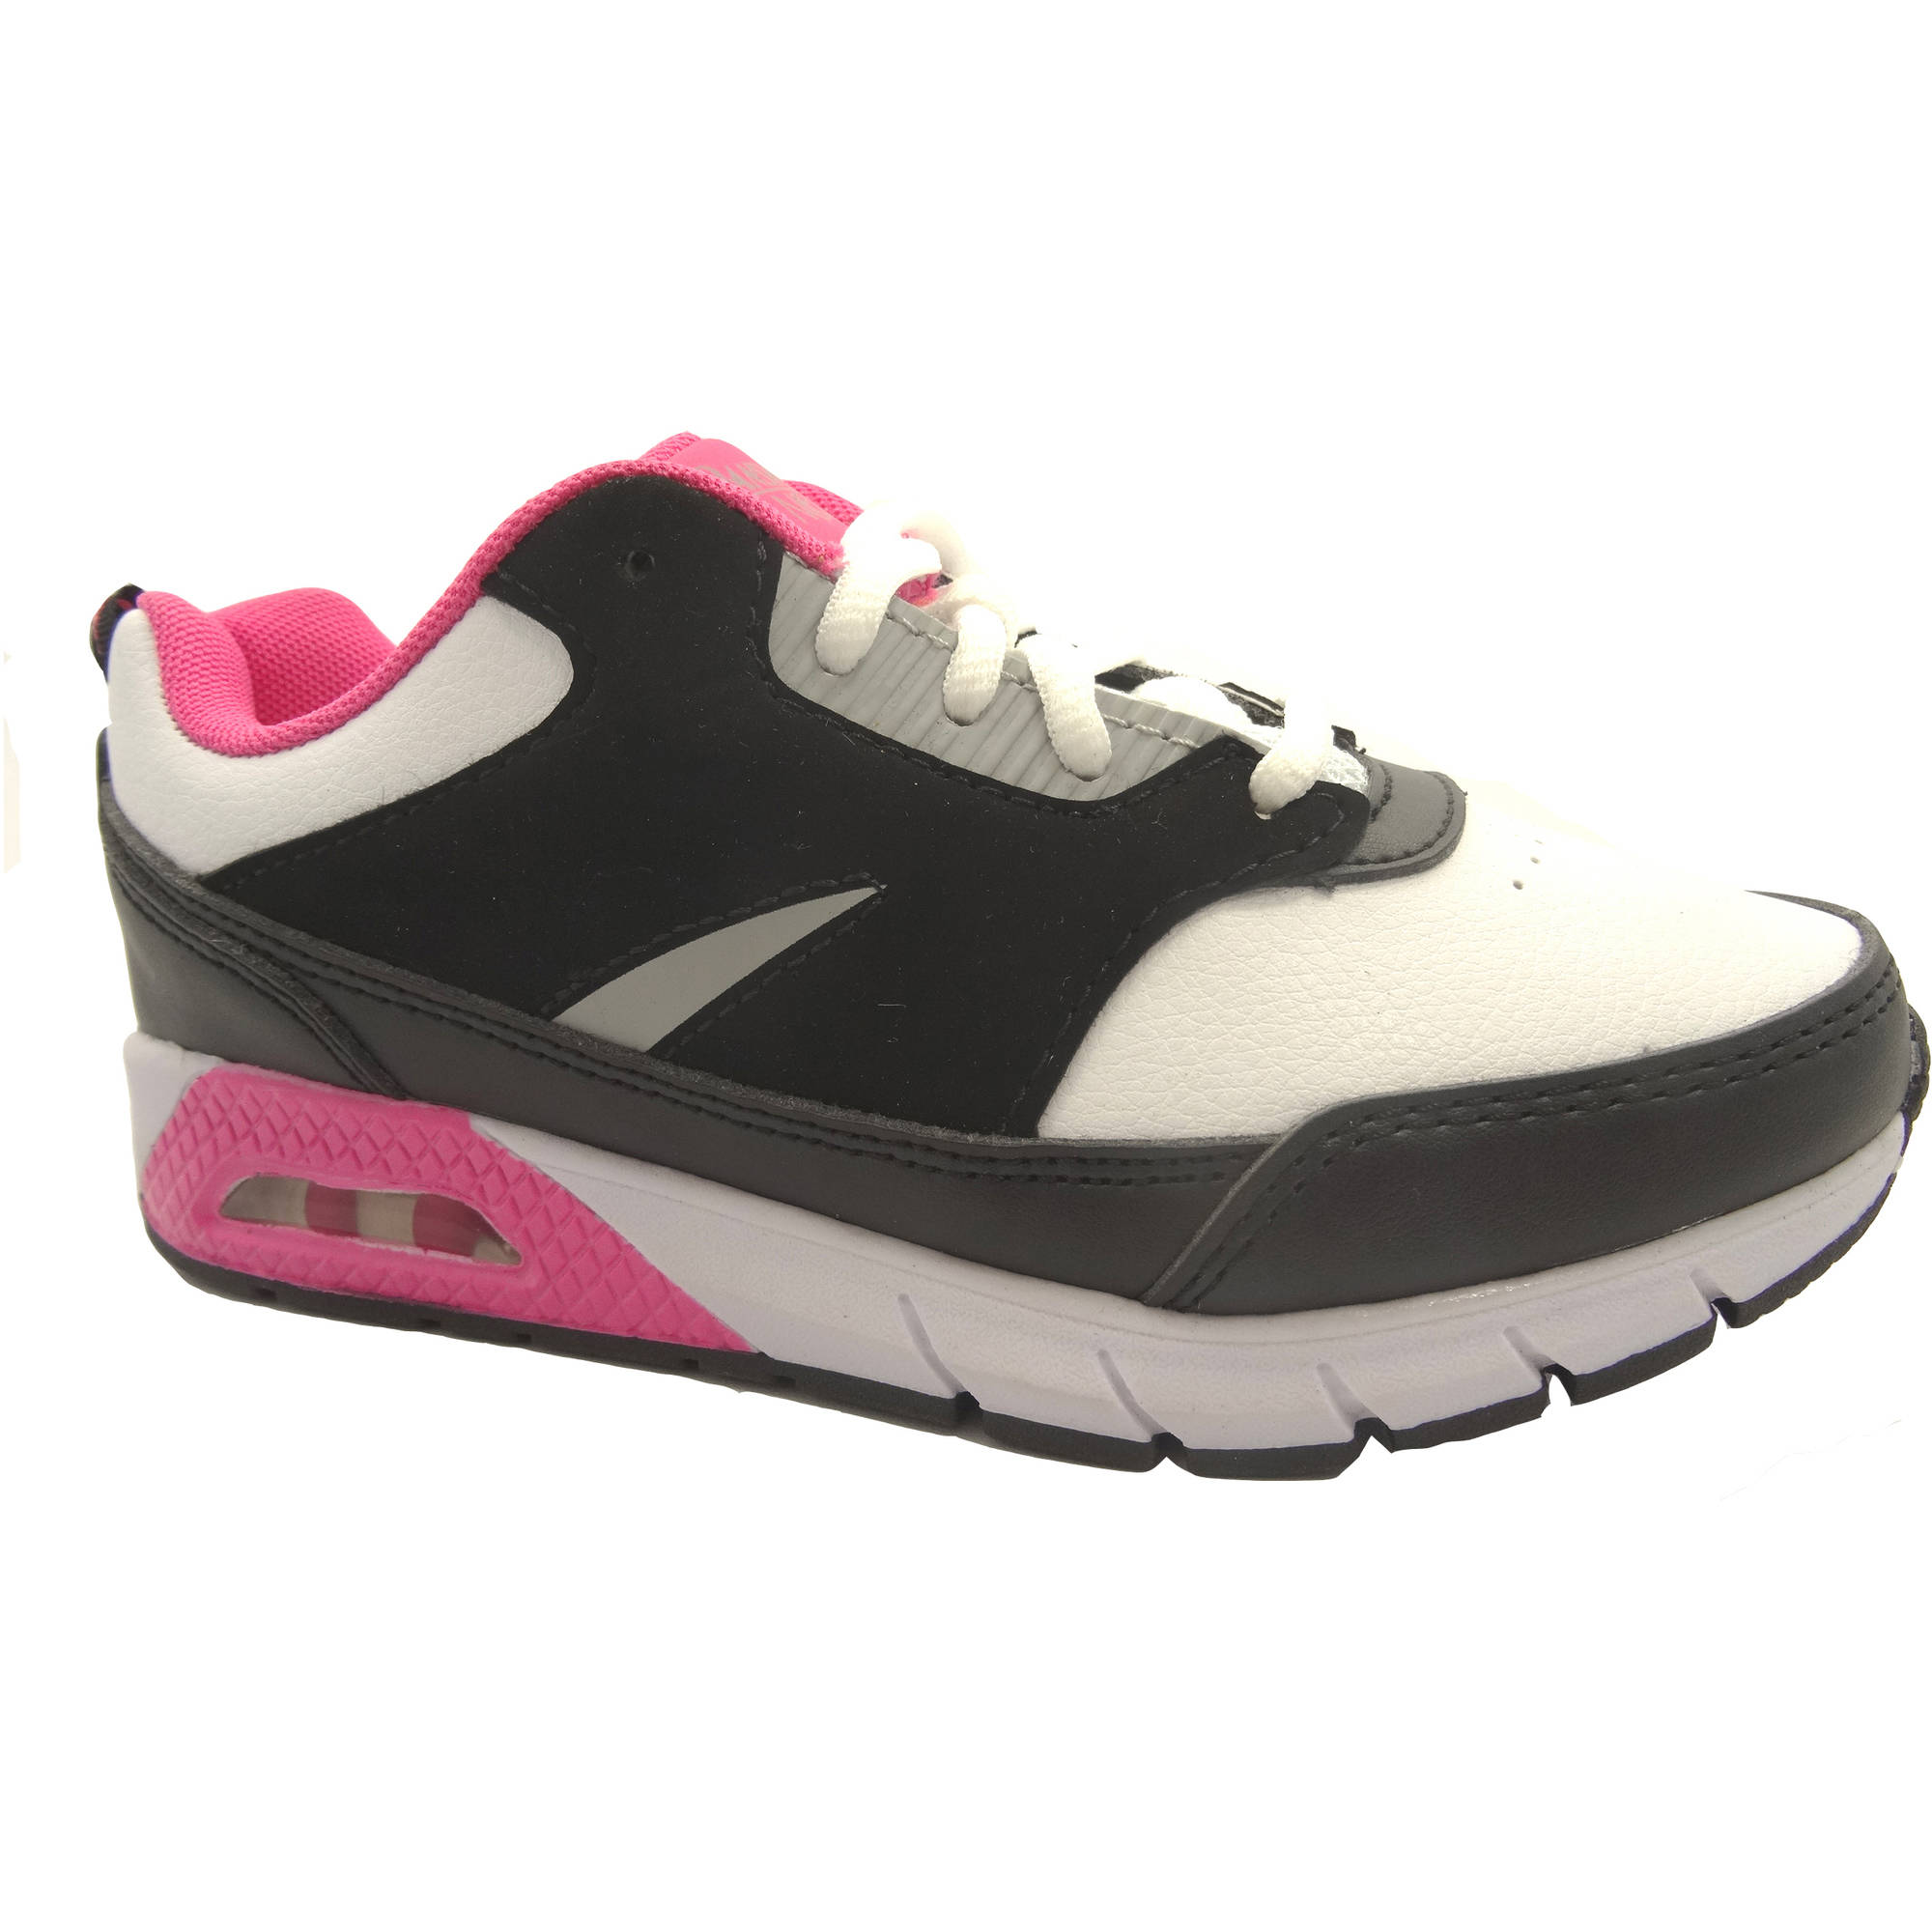 Danskin Now Girl's Retro Athletic Shoe